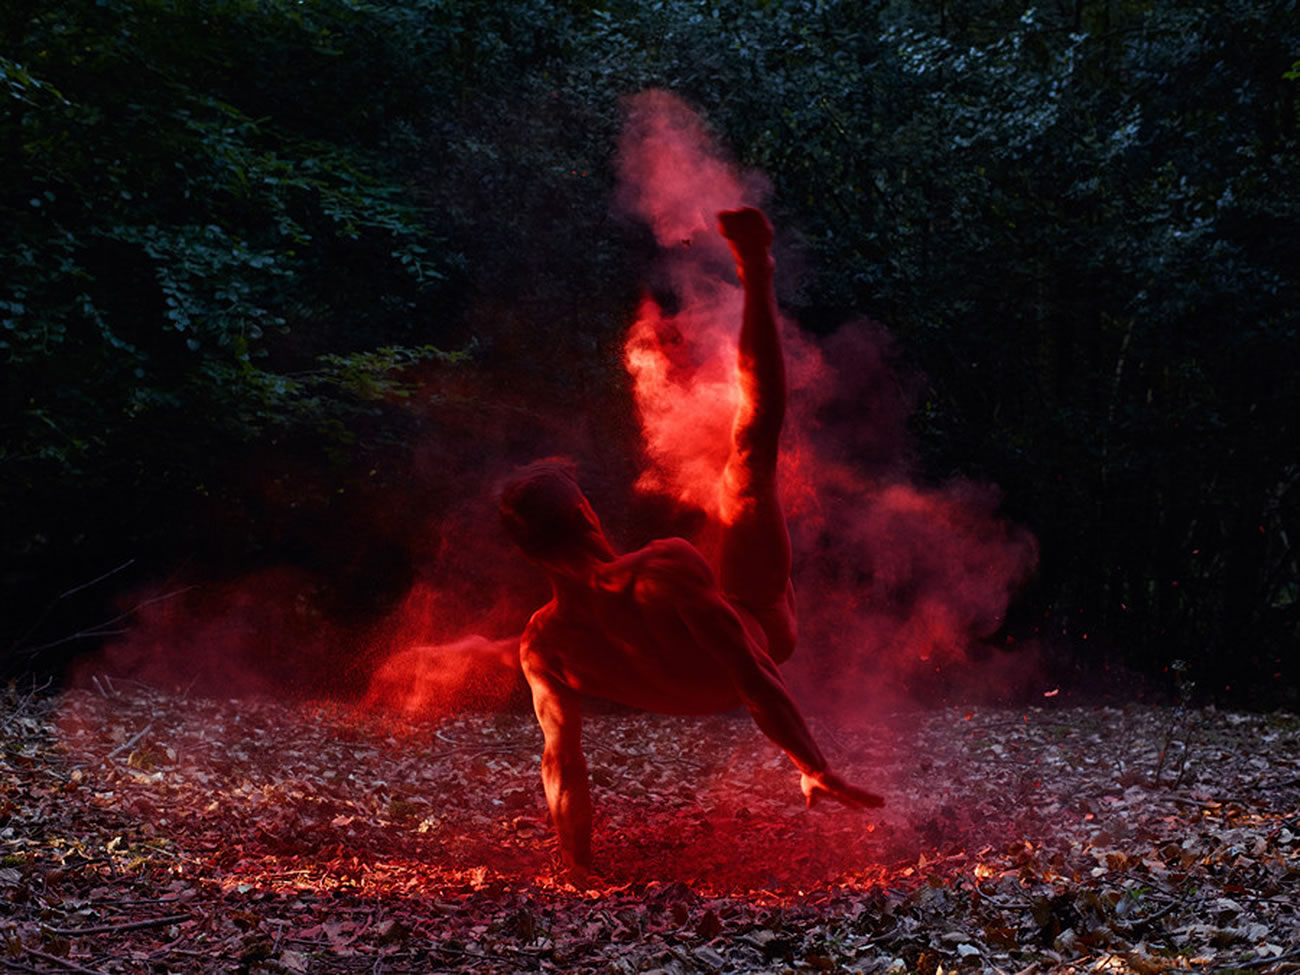 red dust on acrobatic man, photo by by bertil nilsson